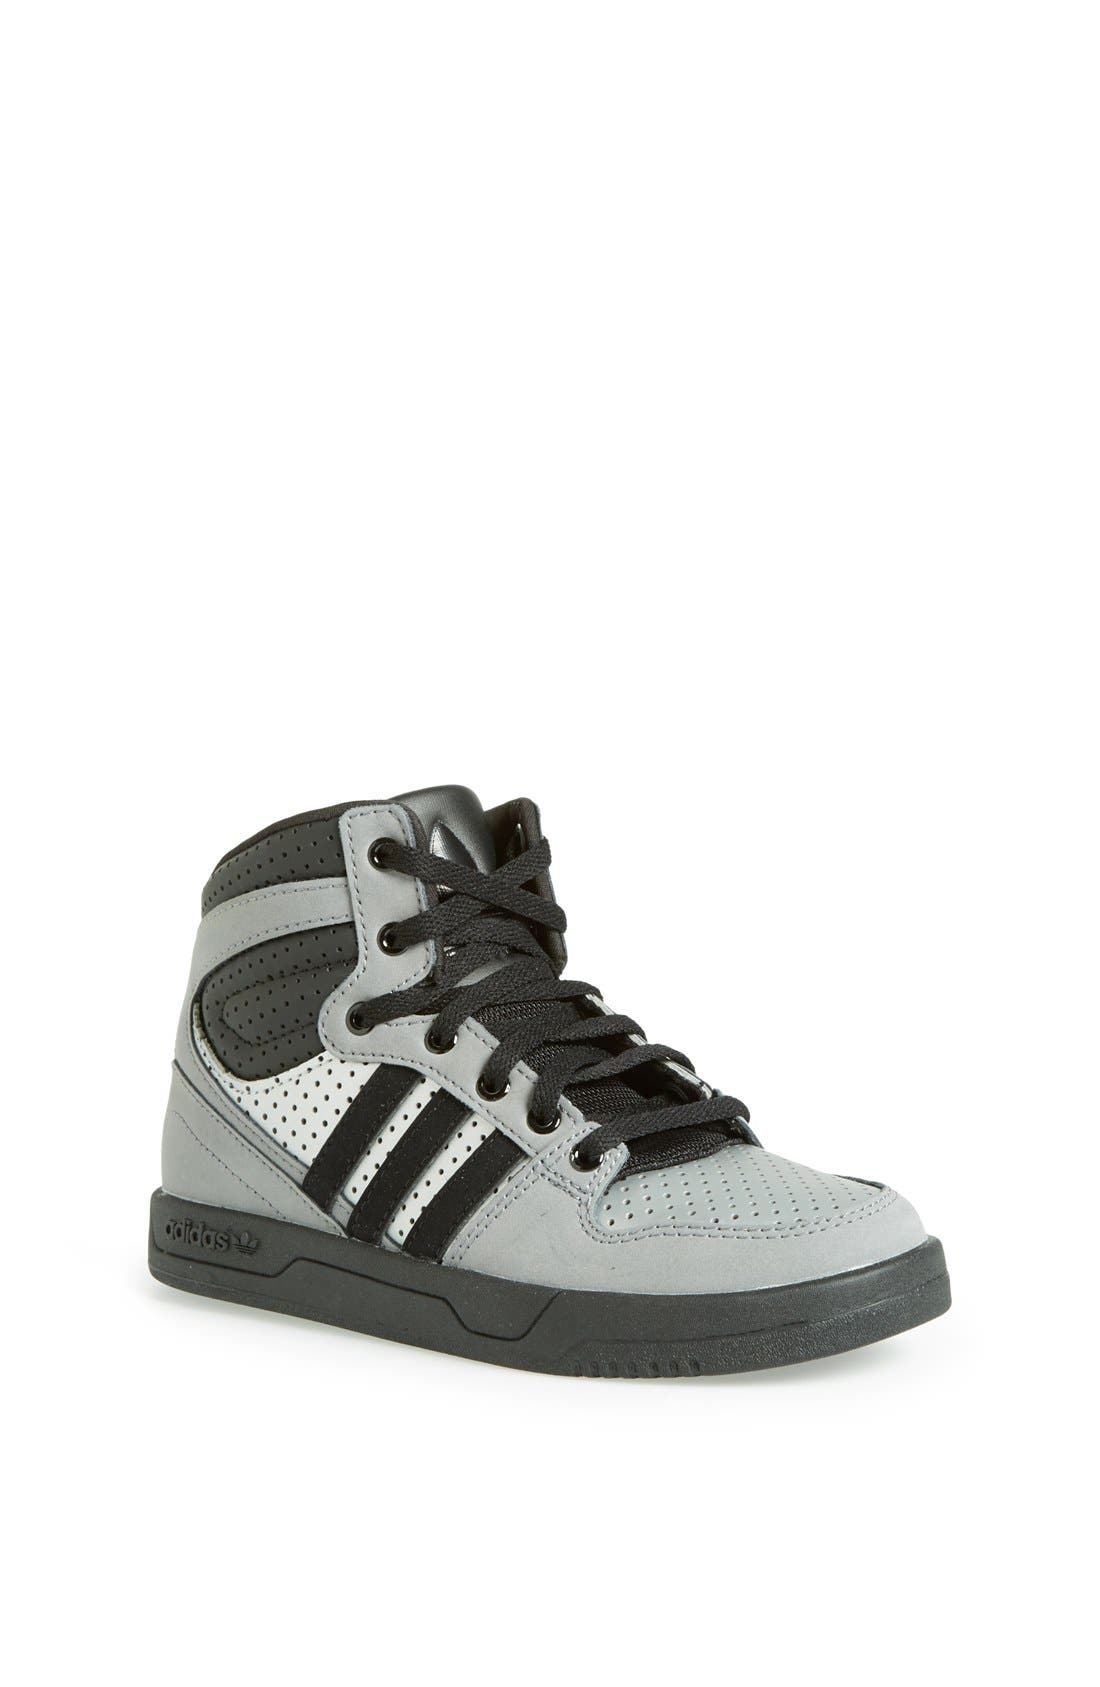 Alternate Image 1 Selected - adidas 'Court Attitude' Sneaker (Toddler, Little Kid & Big Kid)